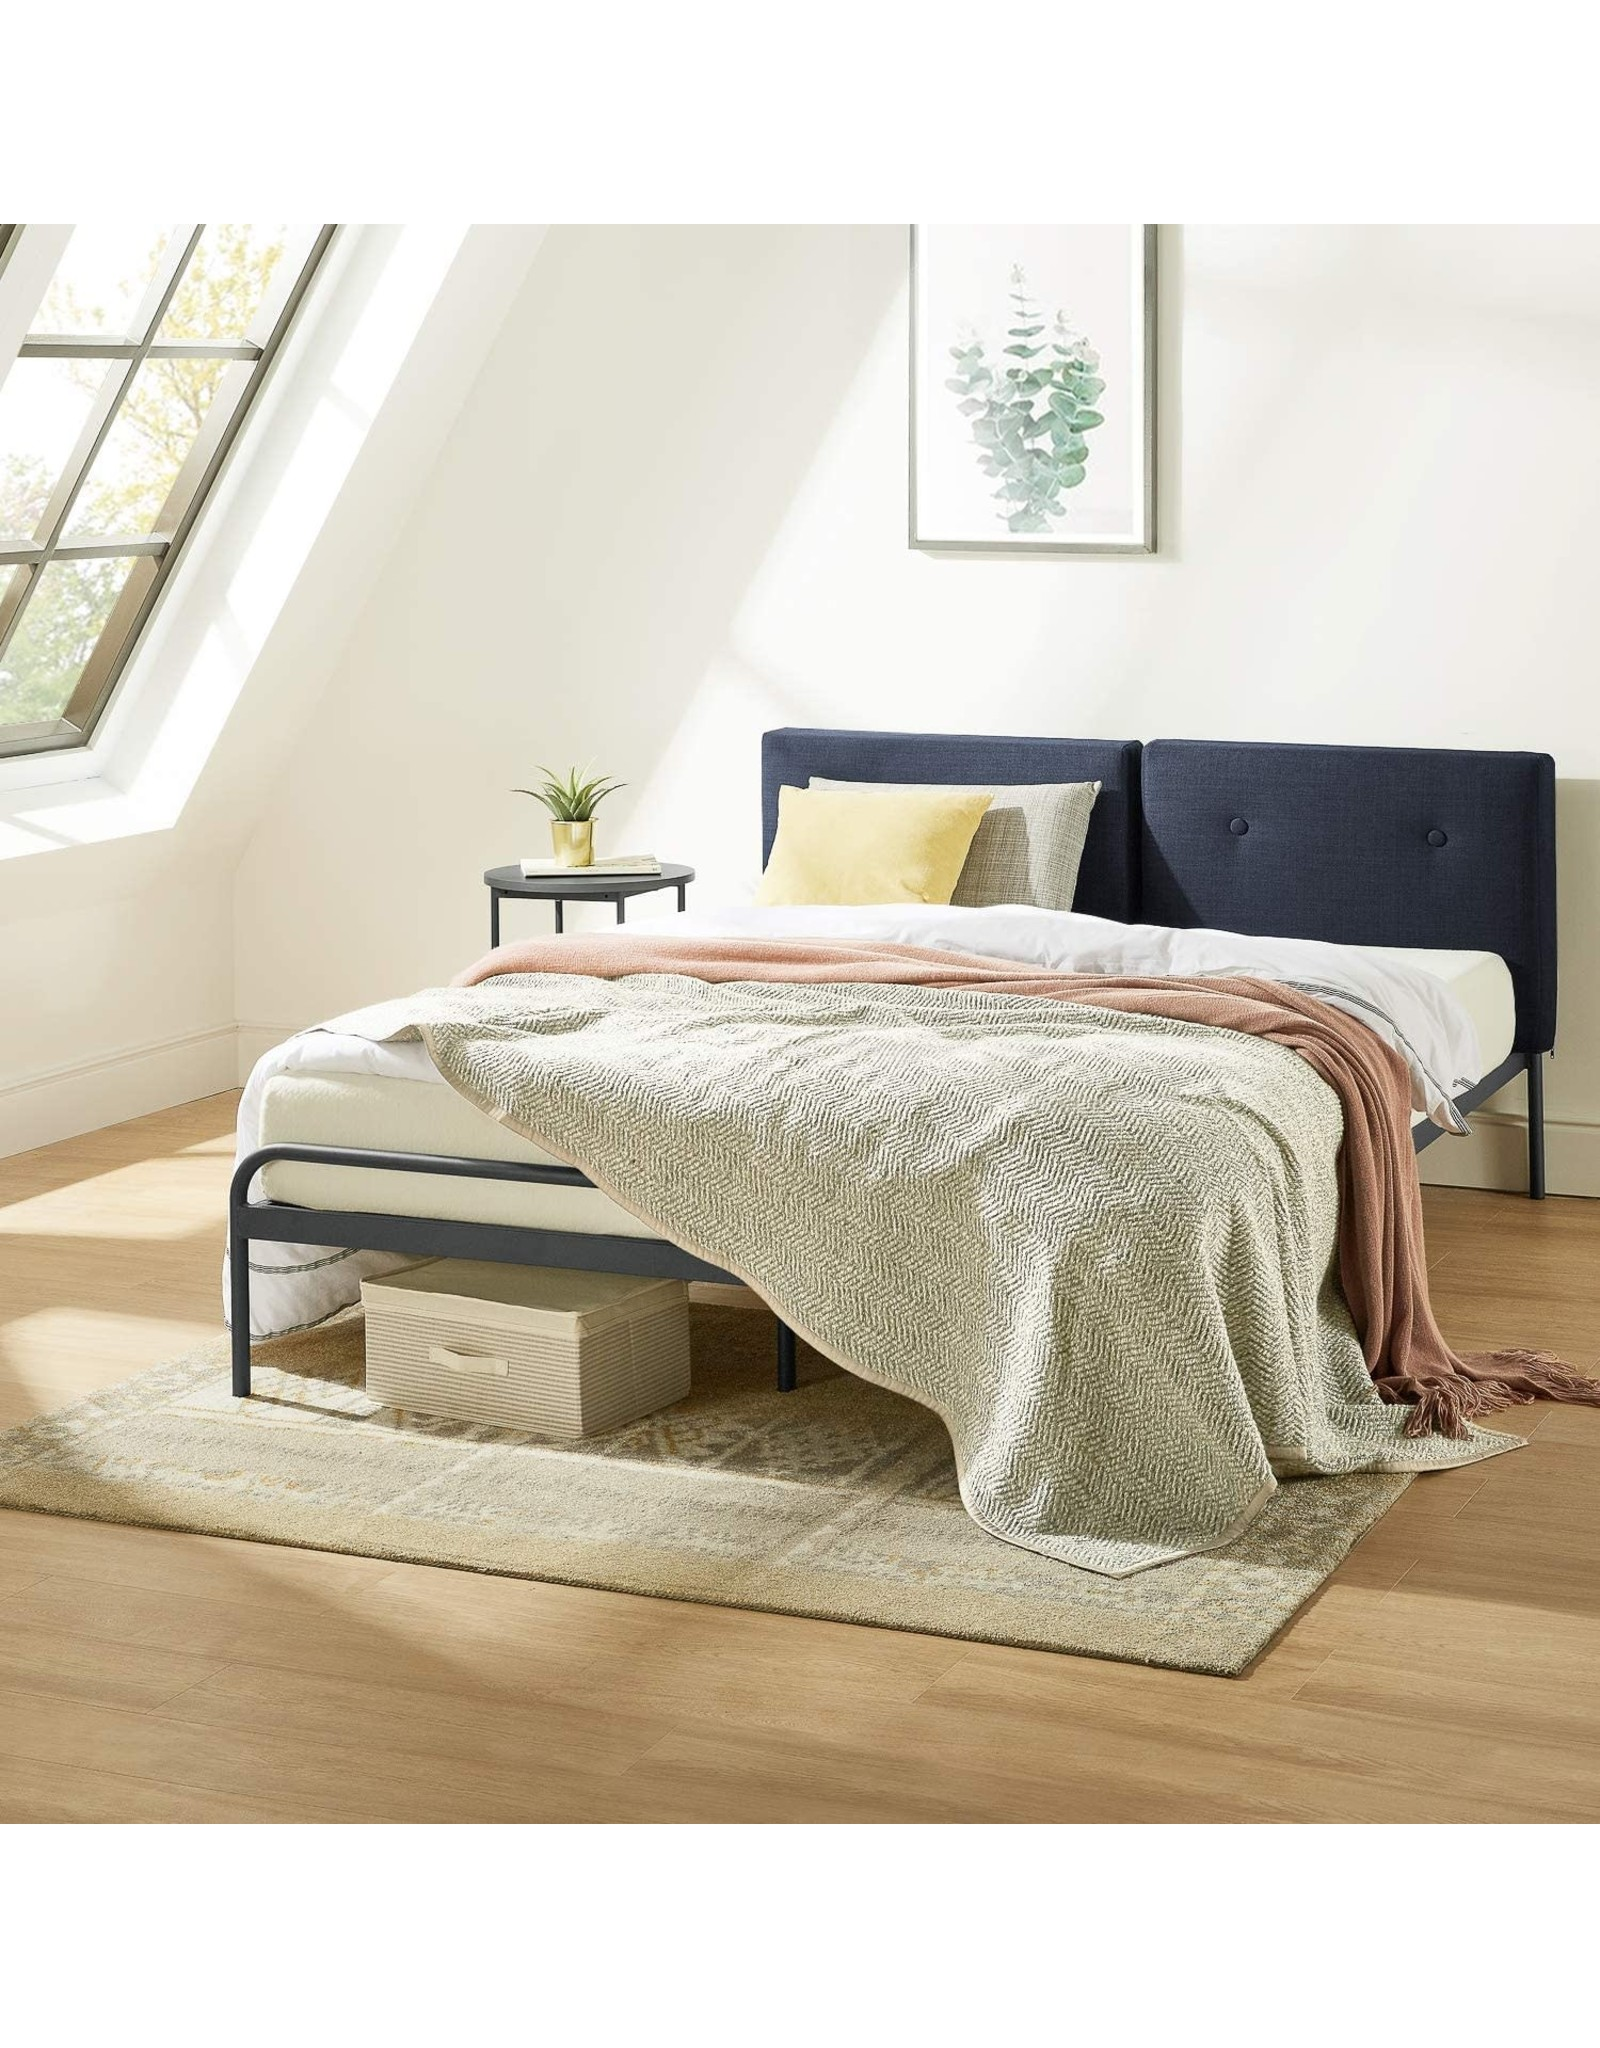 Mellow Mellow Maggie Metal Platform Bed with Upholstered Cushion Headboard, Steel Slats, Easy Assembly, Navy, King (CHFM-GRK)